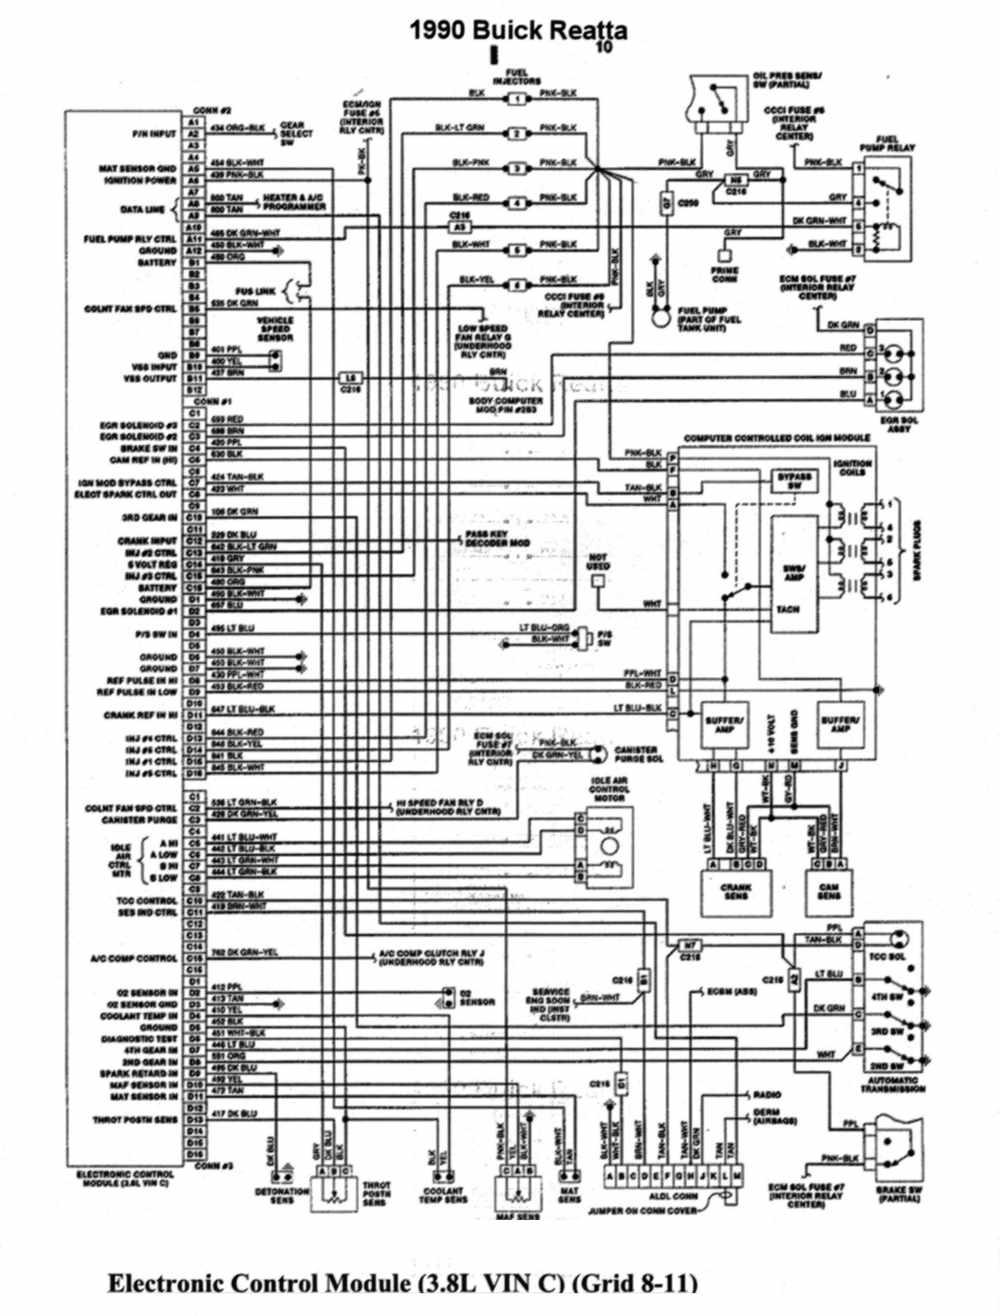 1997 buick skylark engine diagram wiring diagrams 1991 buick century engine diagram 1998 buick skylark engine diagram [ 1000 x 1316 Pixel ]